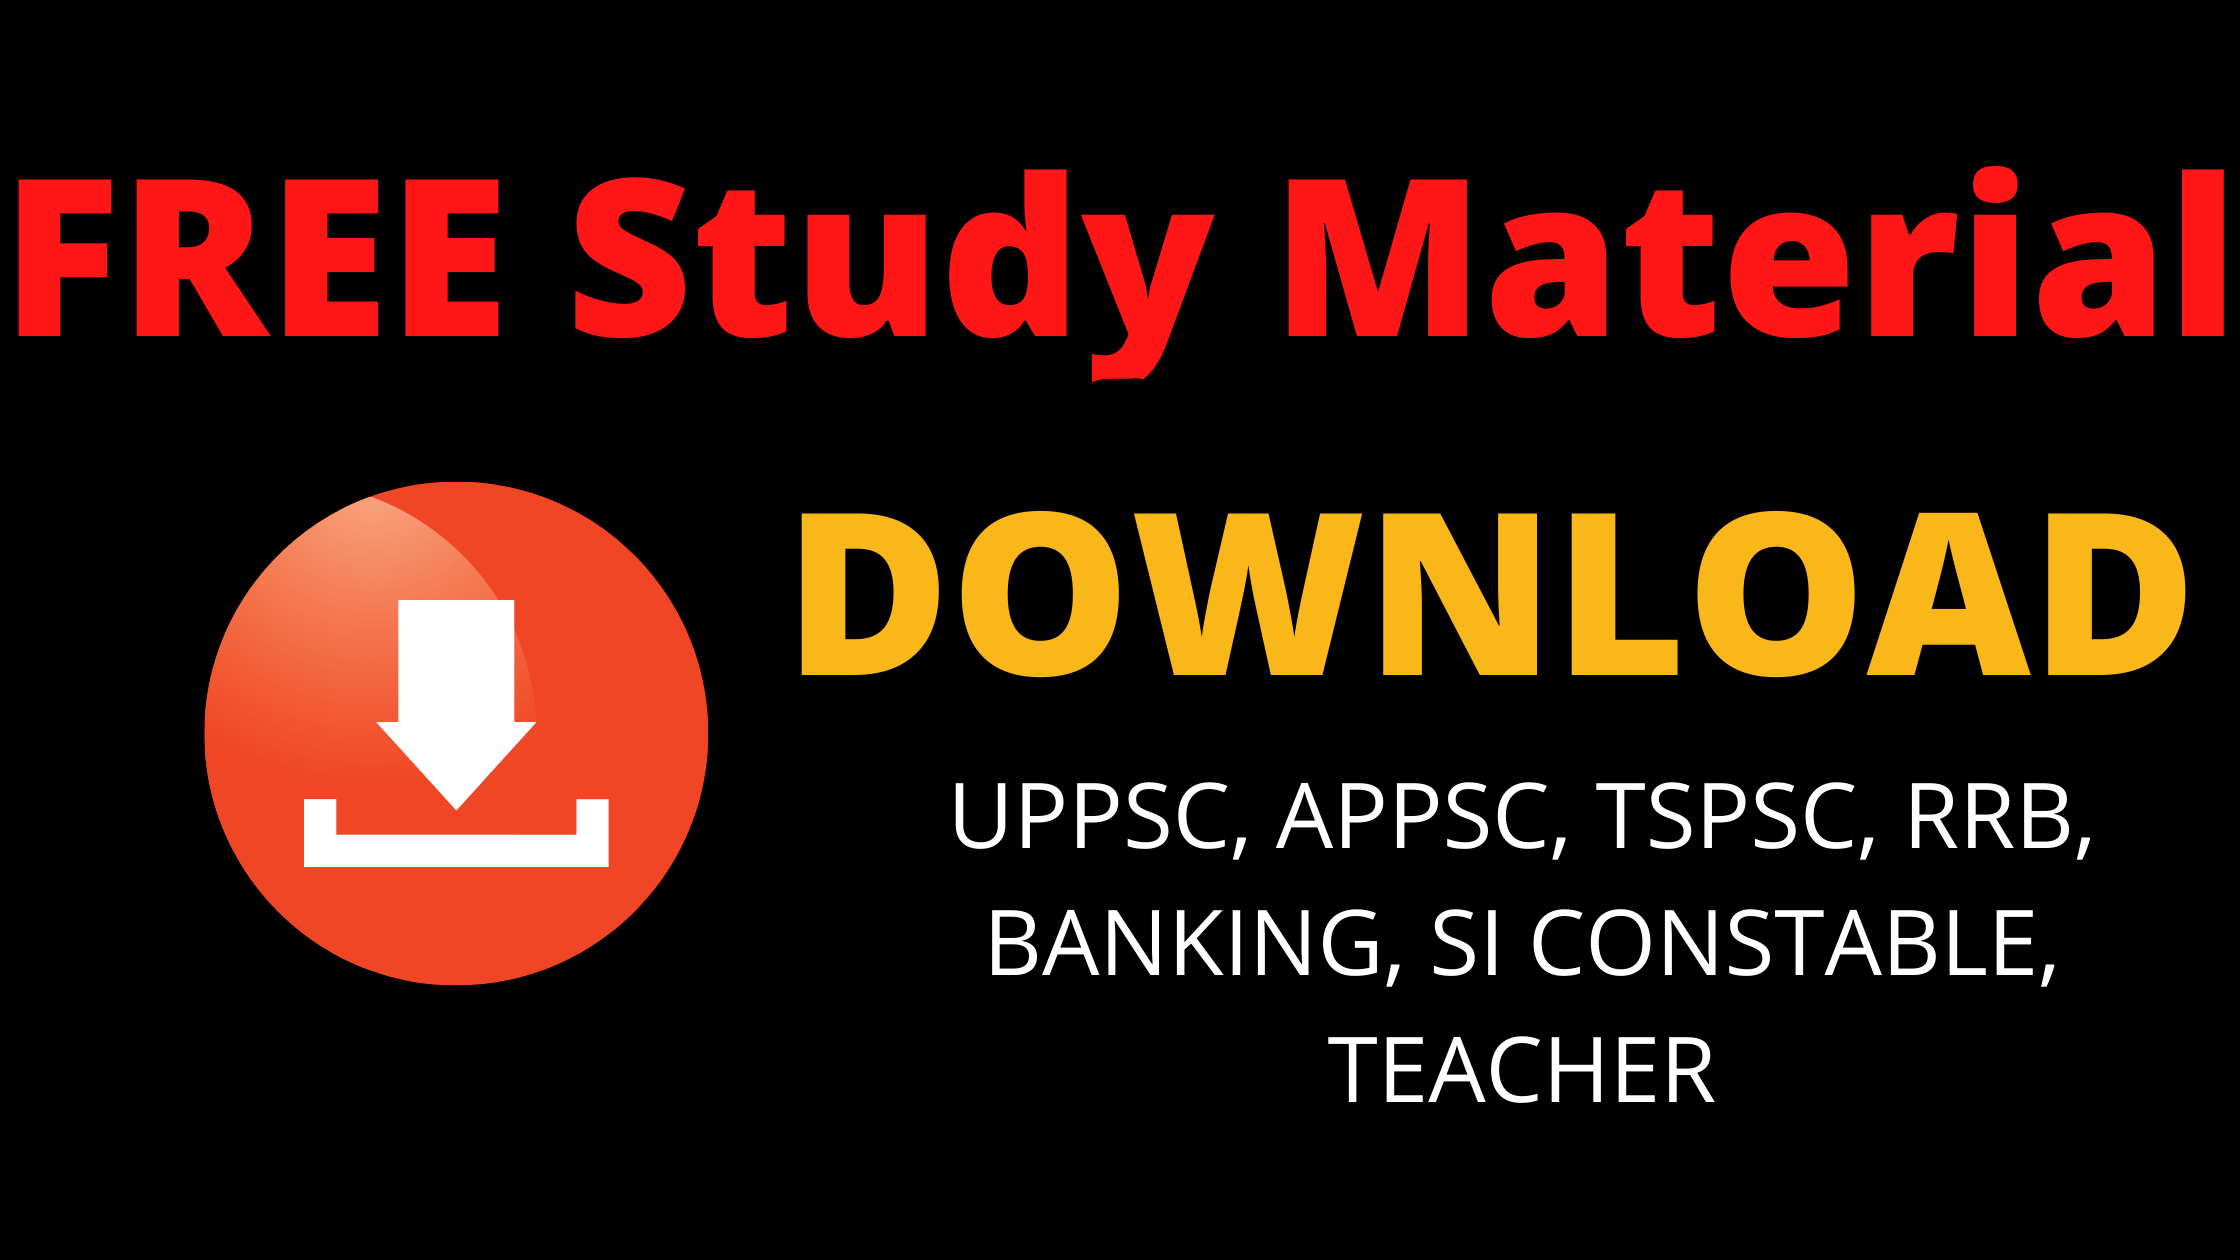 Free Study Materials for APPSC, TSPSC, UPSC, SSC, Bank Exams